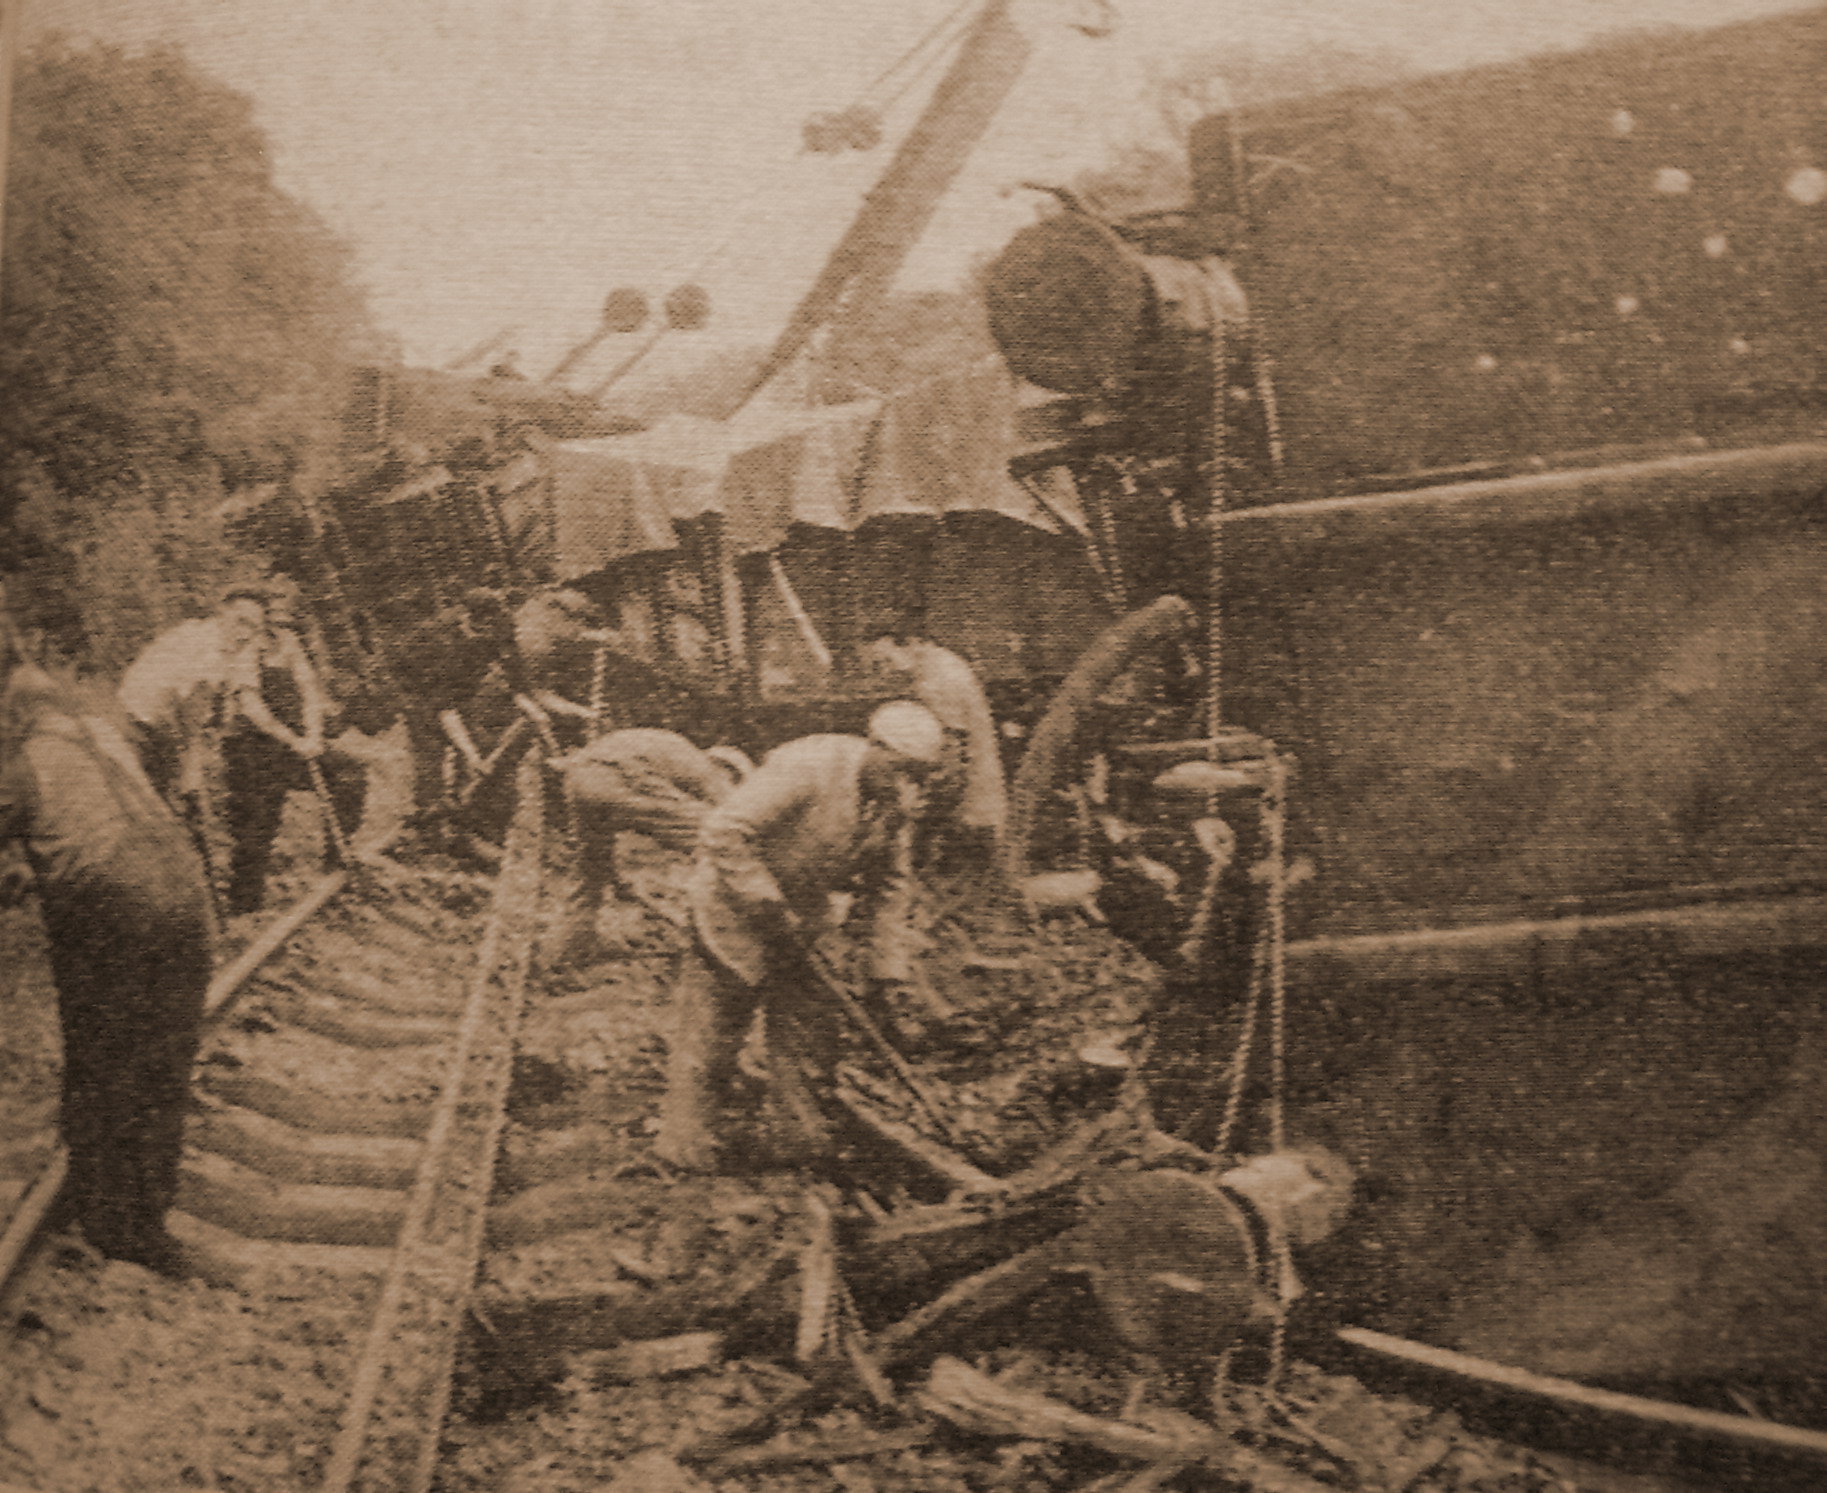 Some of the 33 derailed wagons